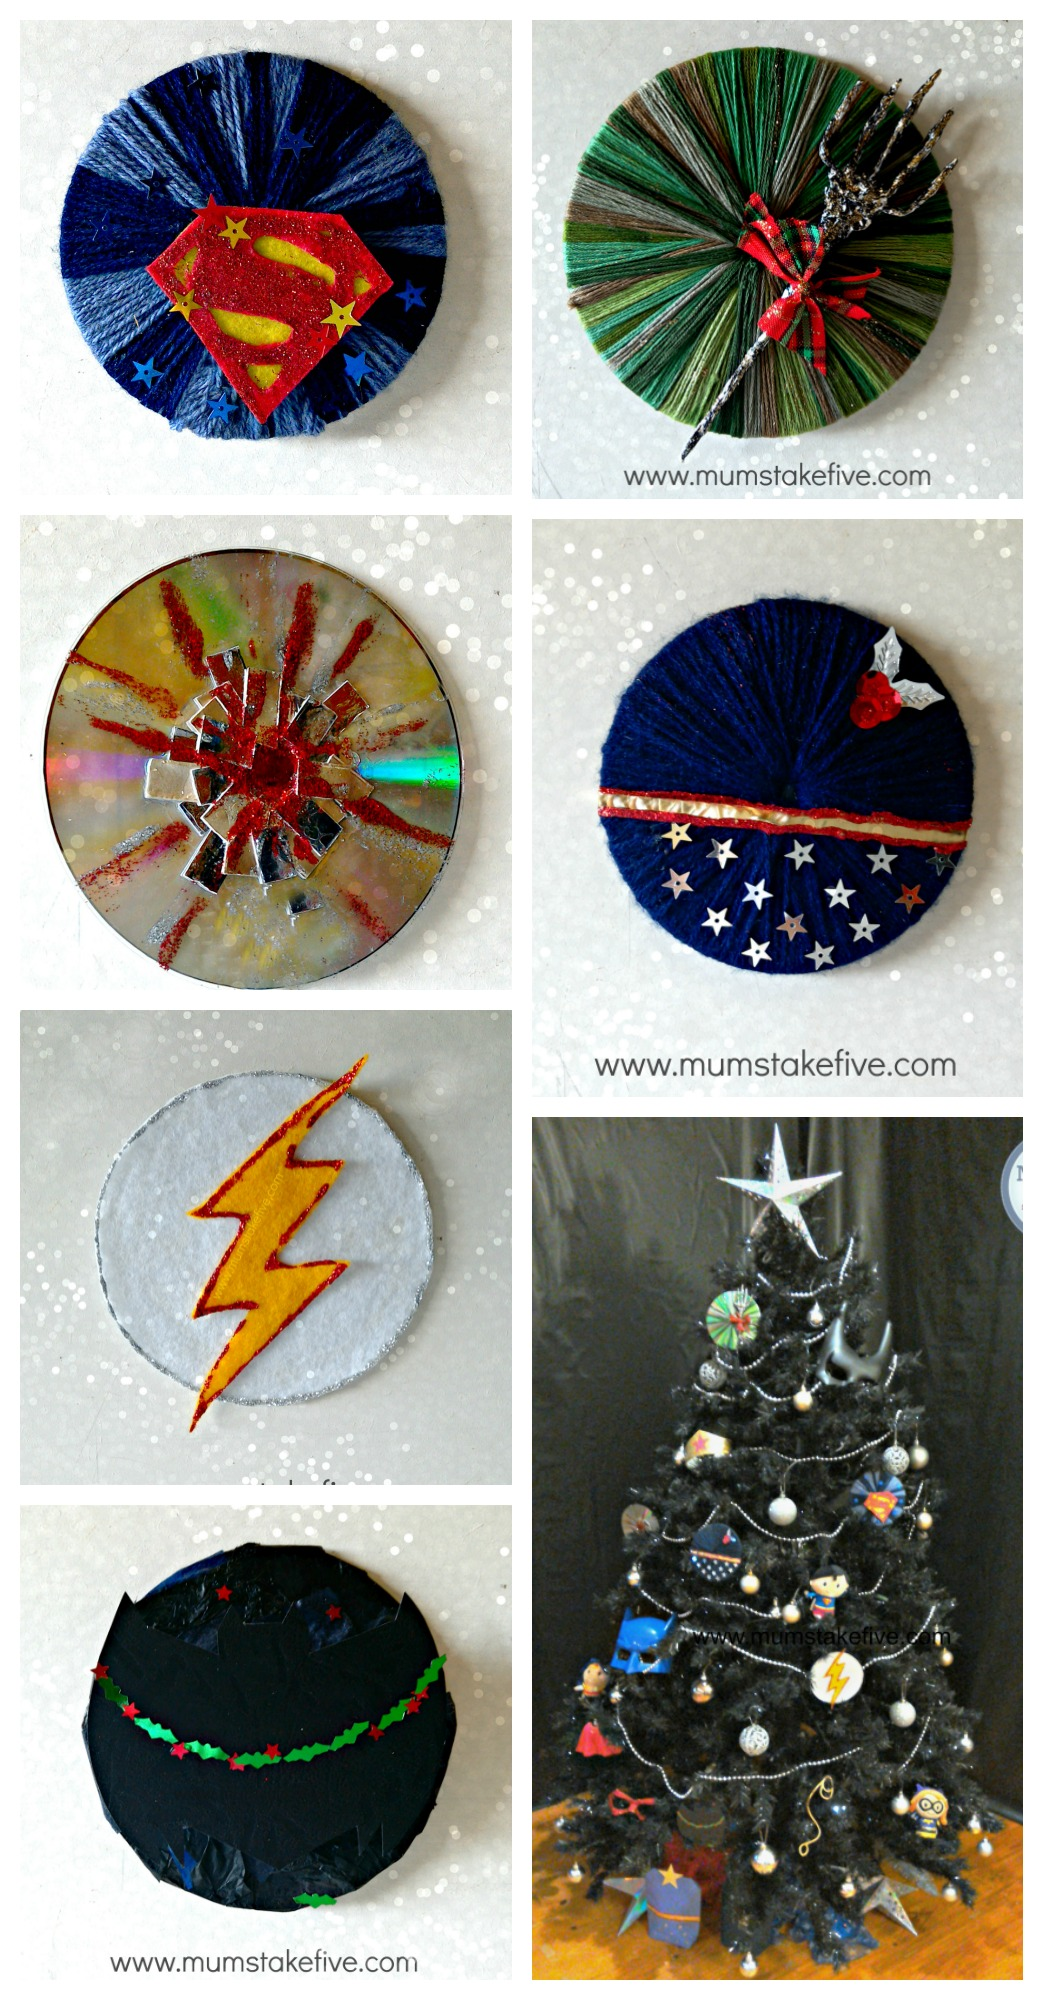 Justice League Christmas Craft